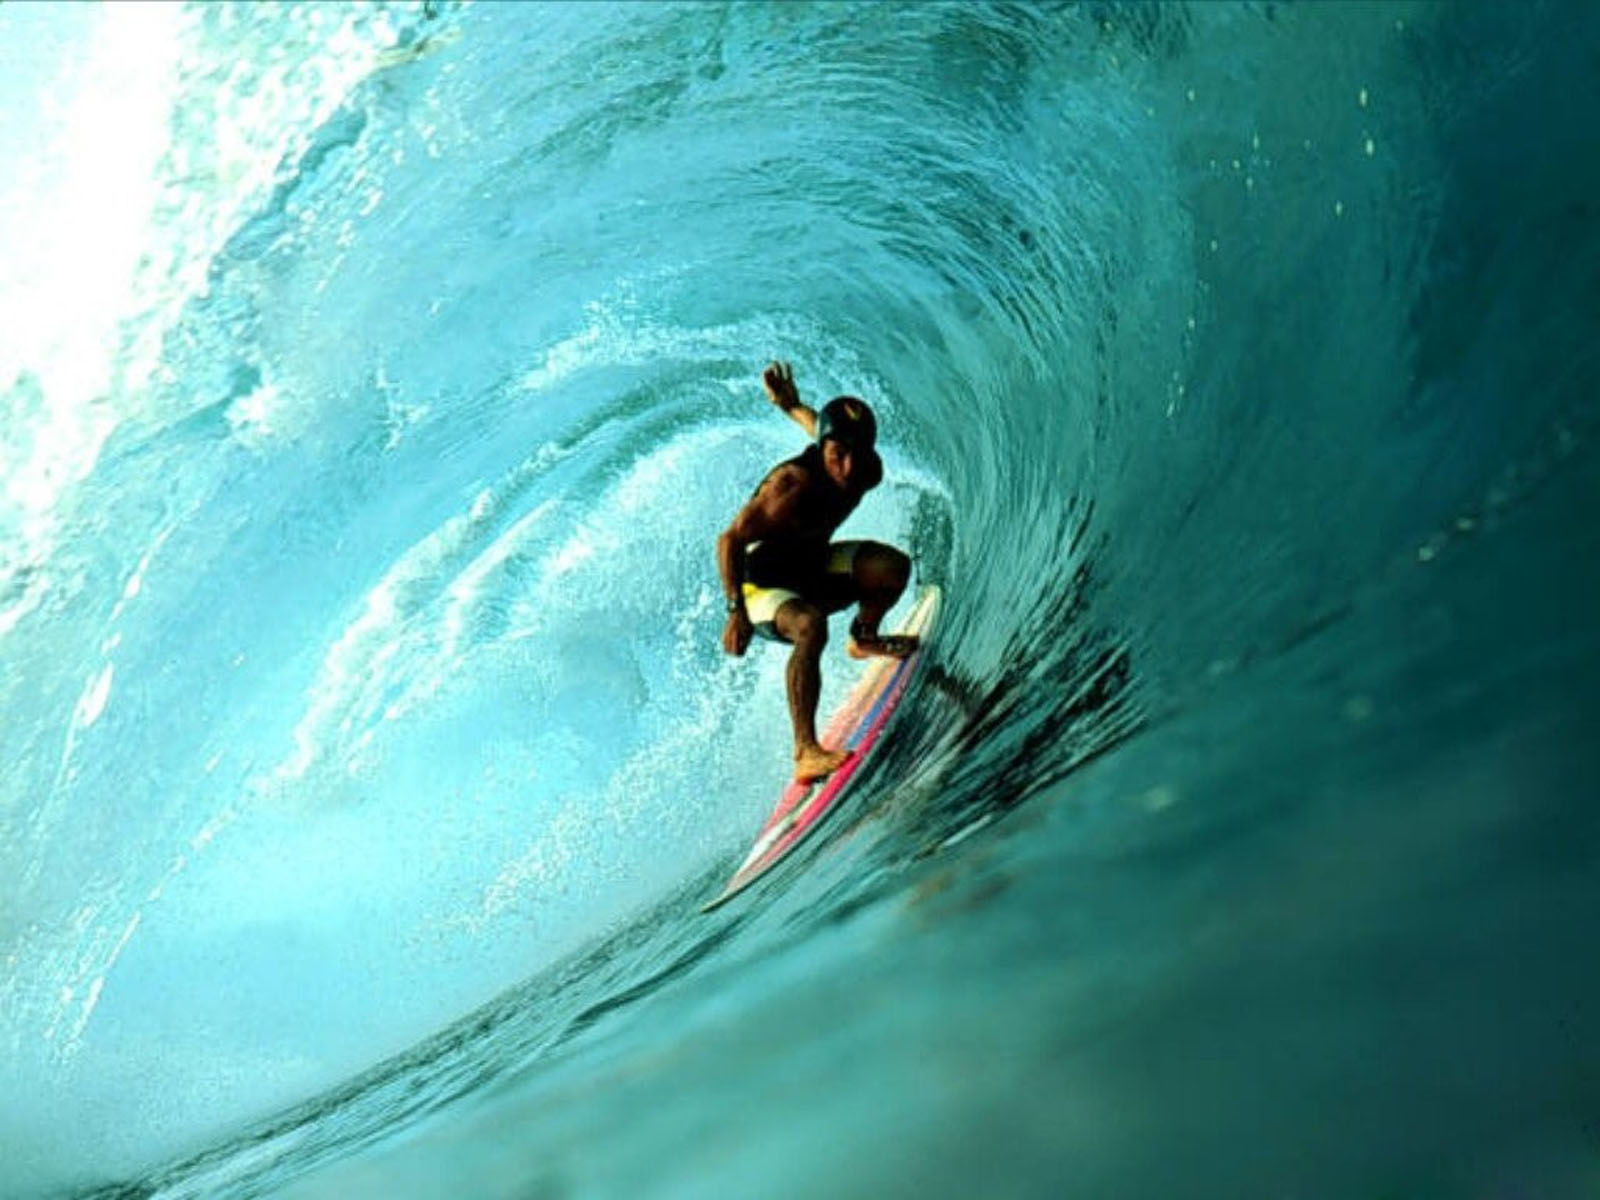 wallpapers Surfing Water Sports Wallpapers 1600x1200